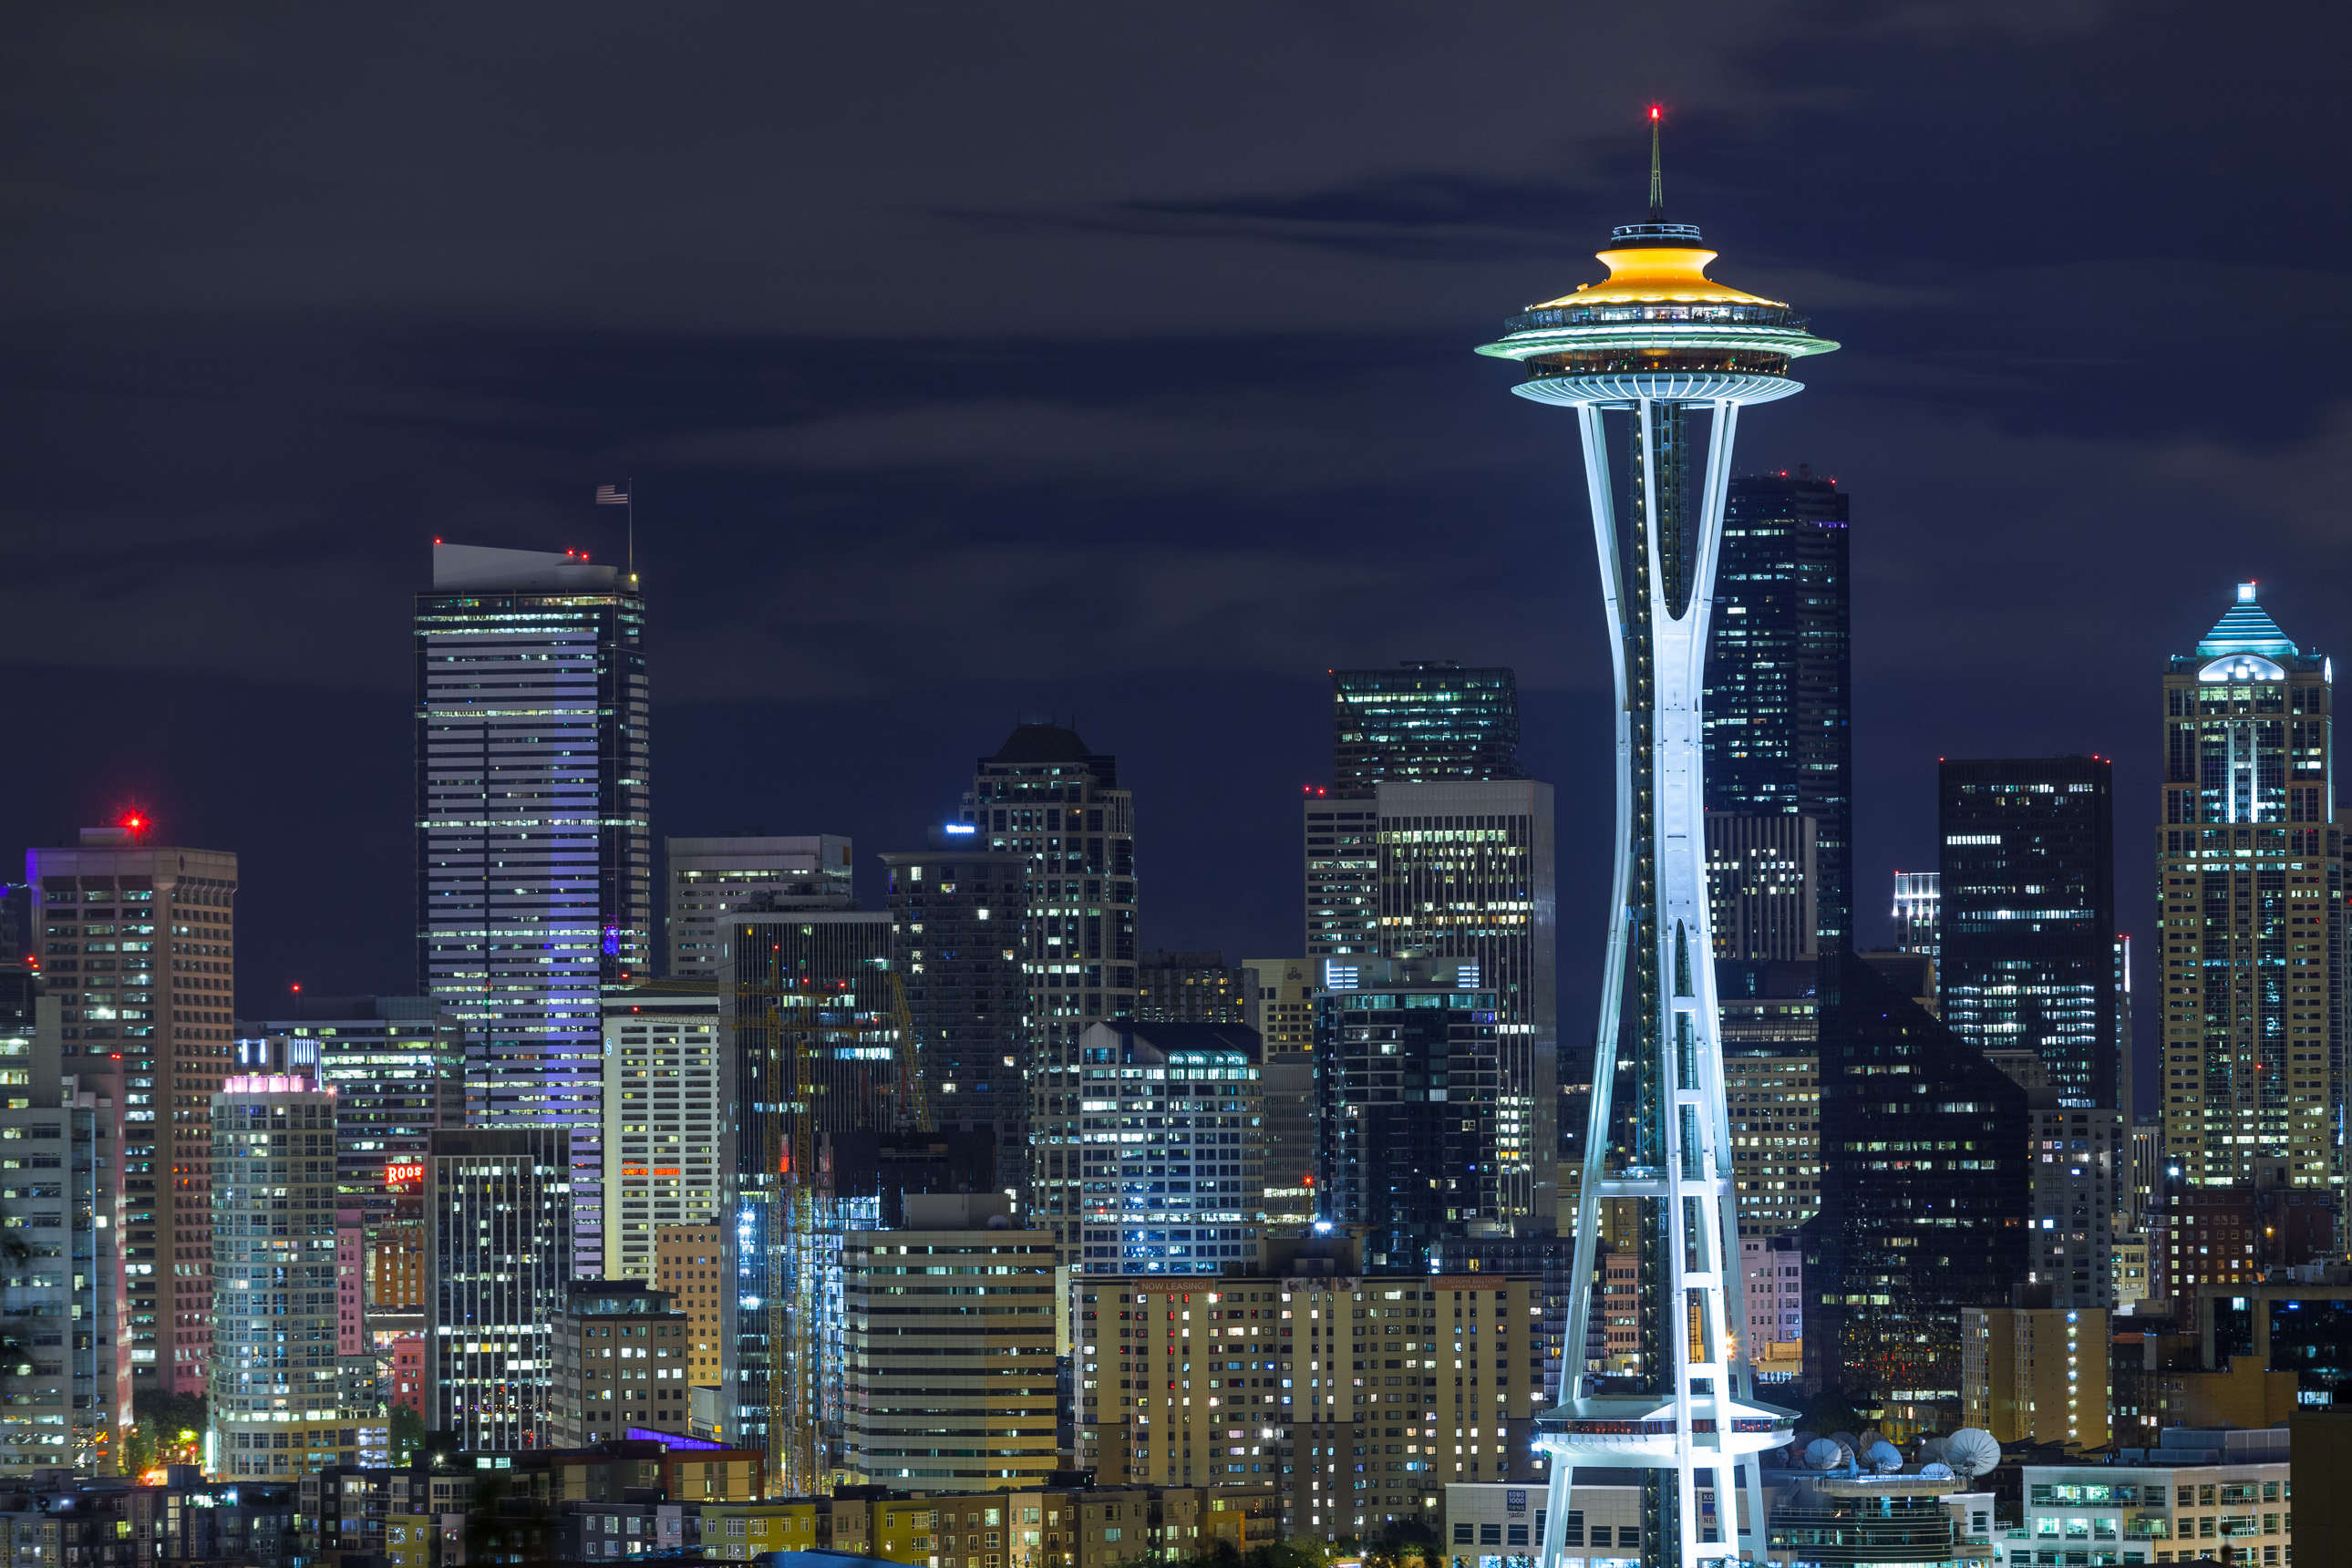 Space Needle at night from Seattle's Kerry Park